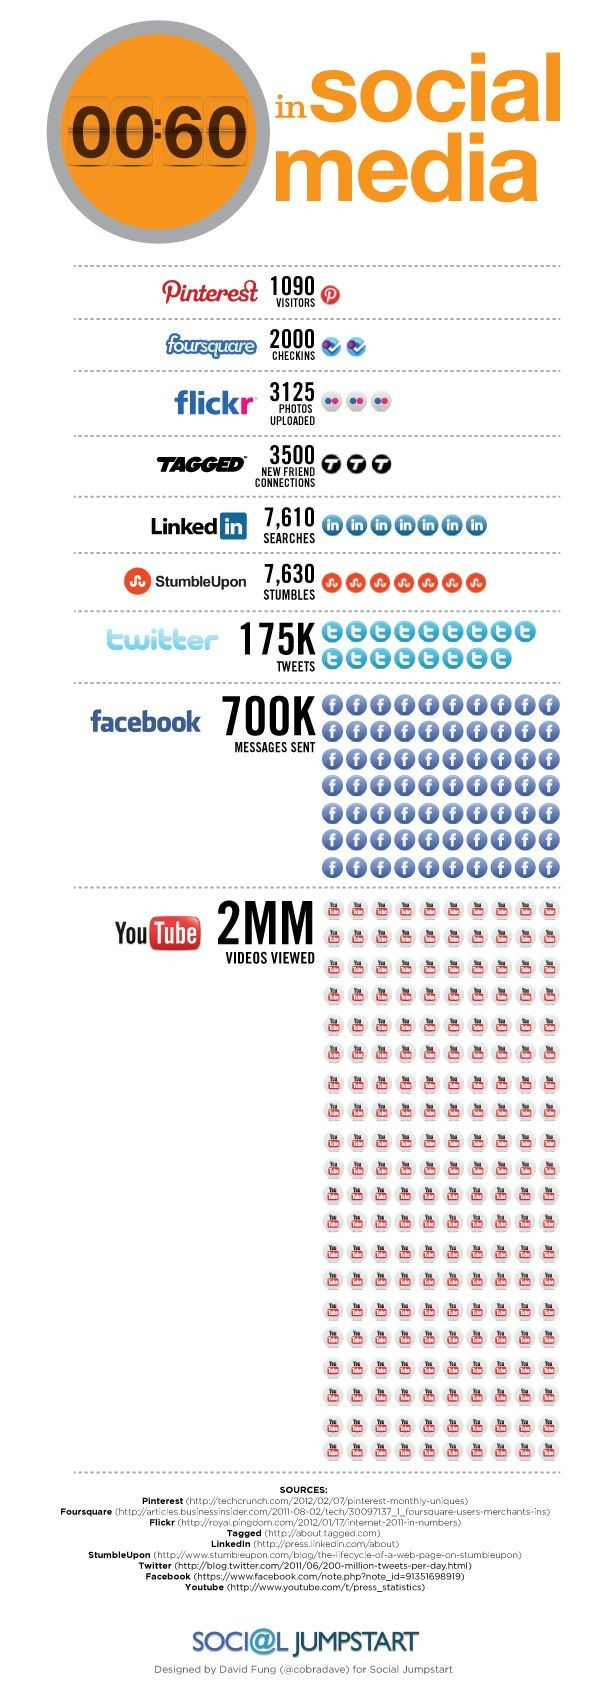 What Happens every single minute on Social Media?